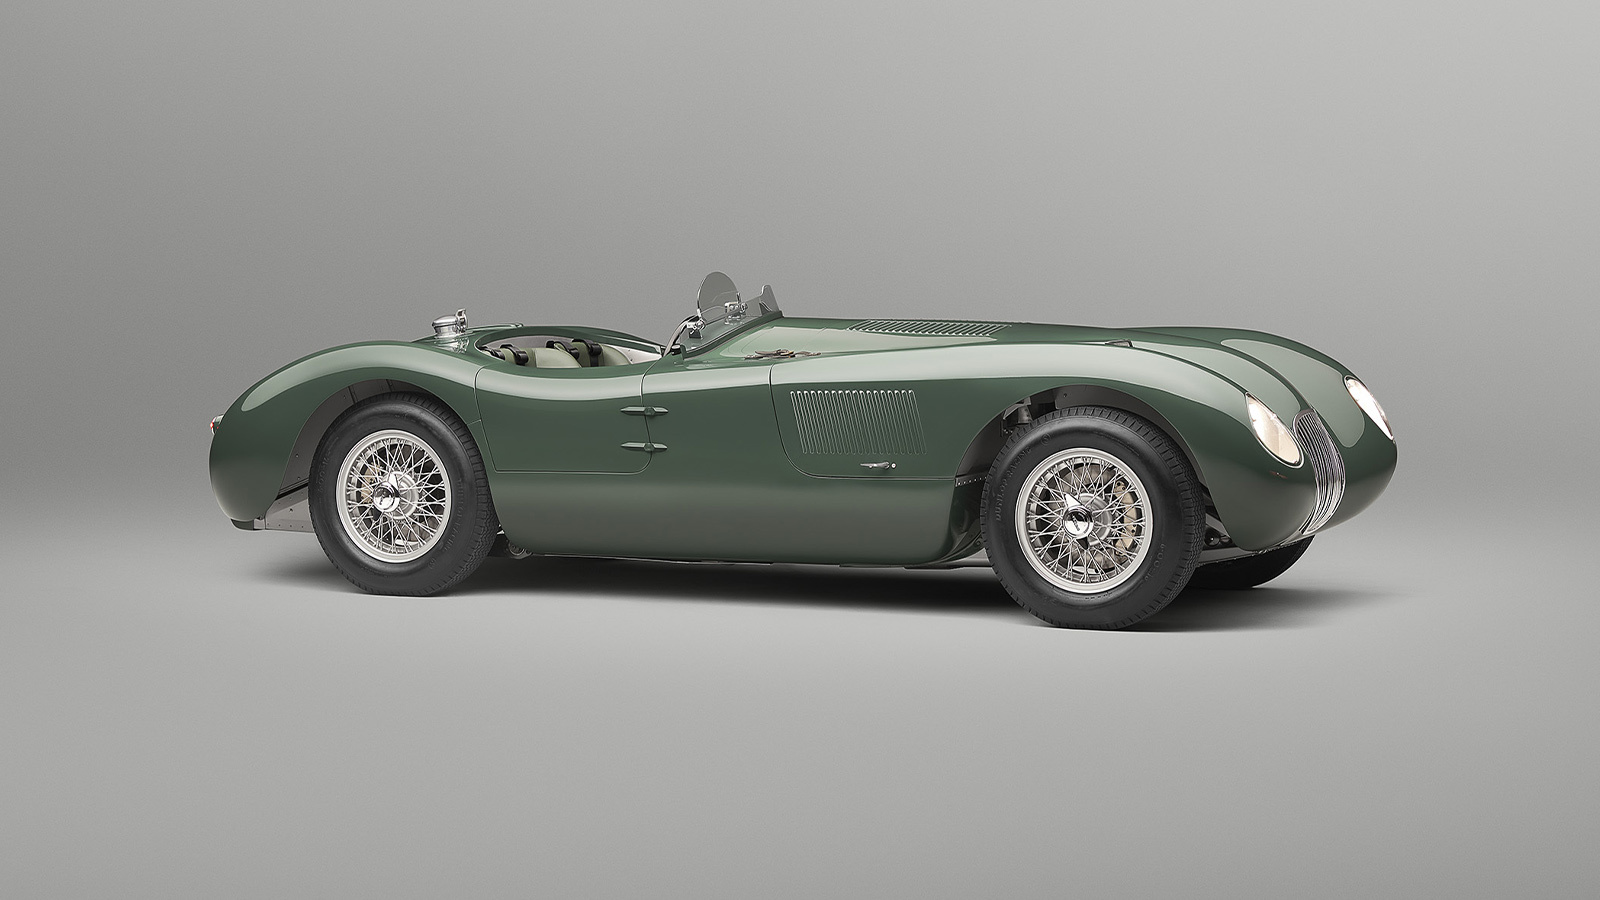 Continuation continues at Jaguar with revival of Le Mans-winning C-type